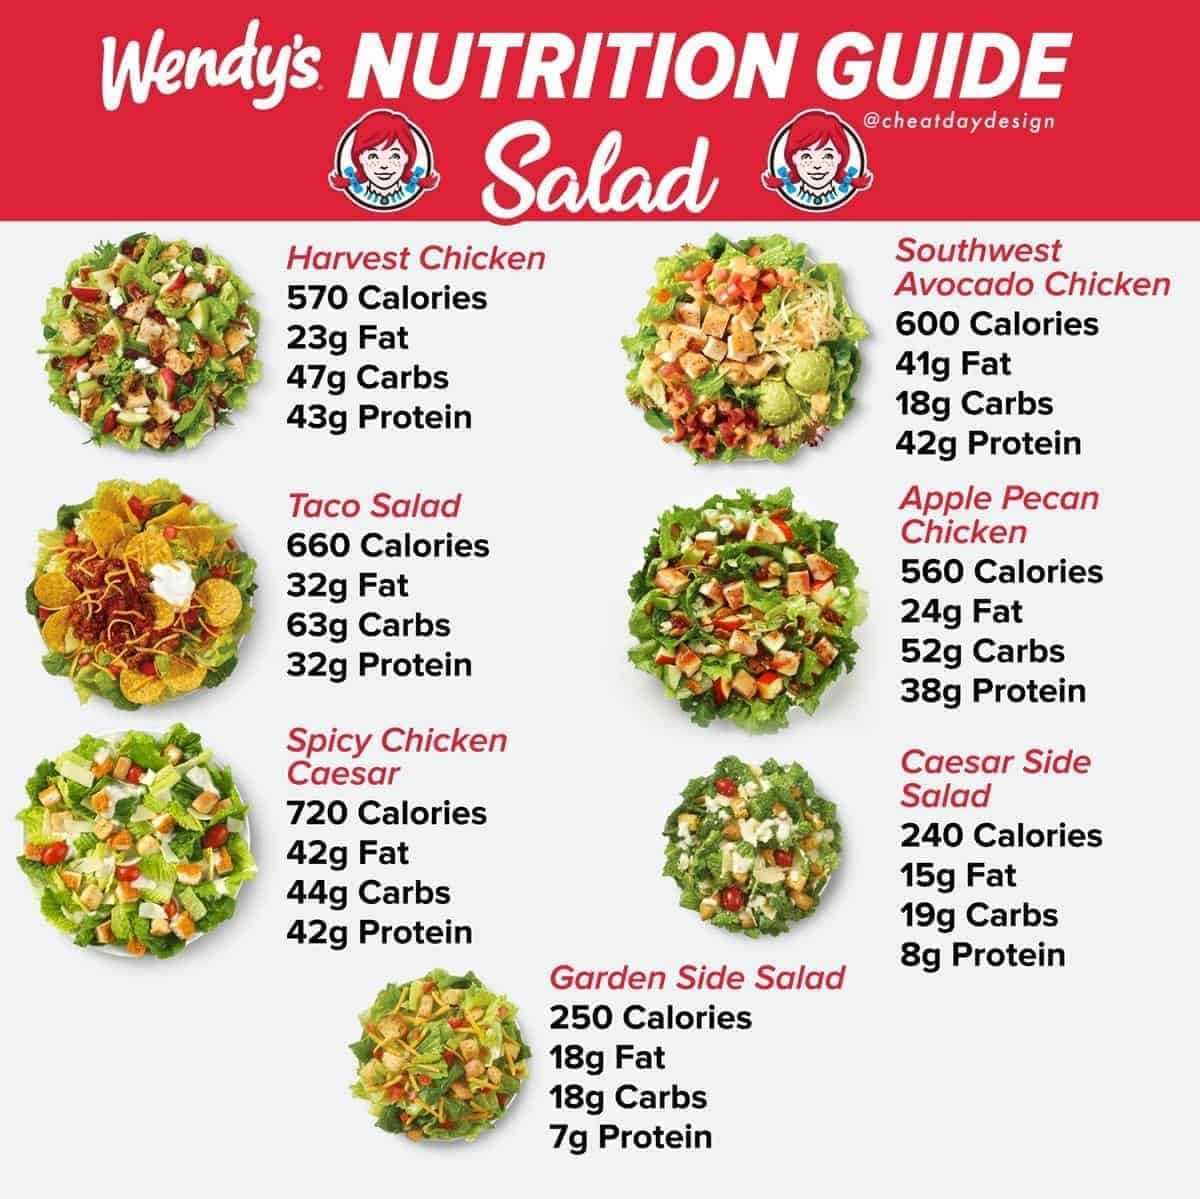 Full nutritional guide for Wendy's fast food salads